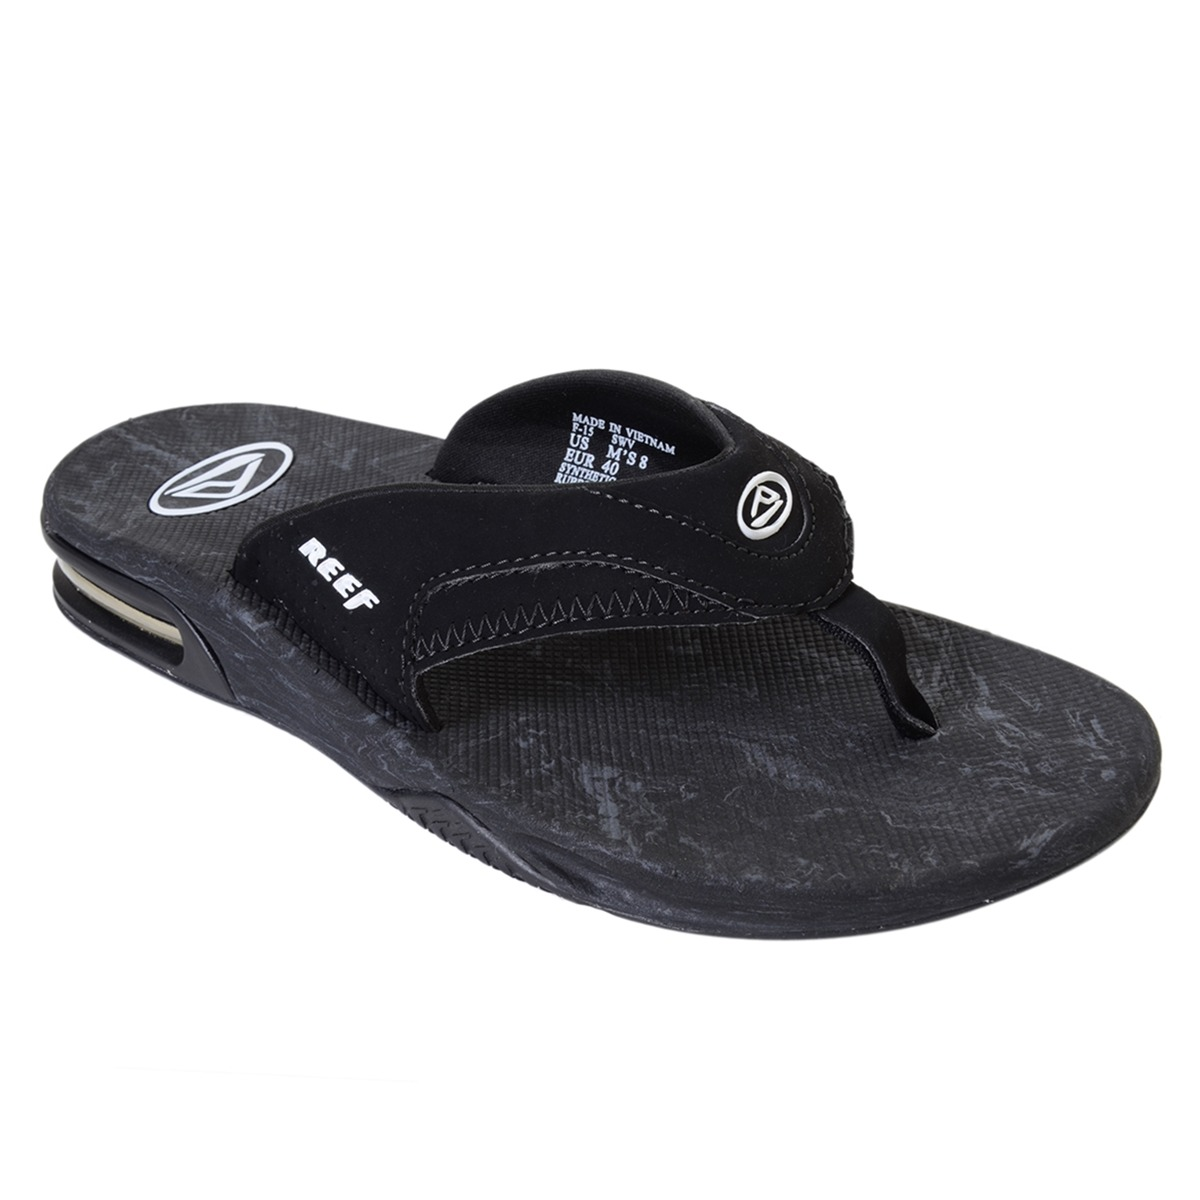 53a3e84b32878d Chinelo Masculino Reef Mick Fanning Prints Black Tribal